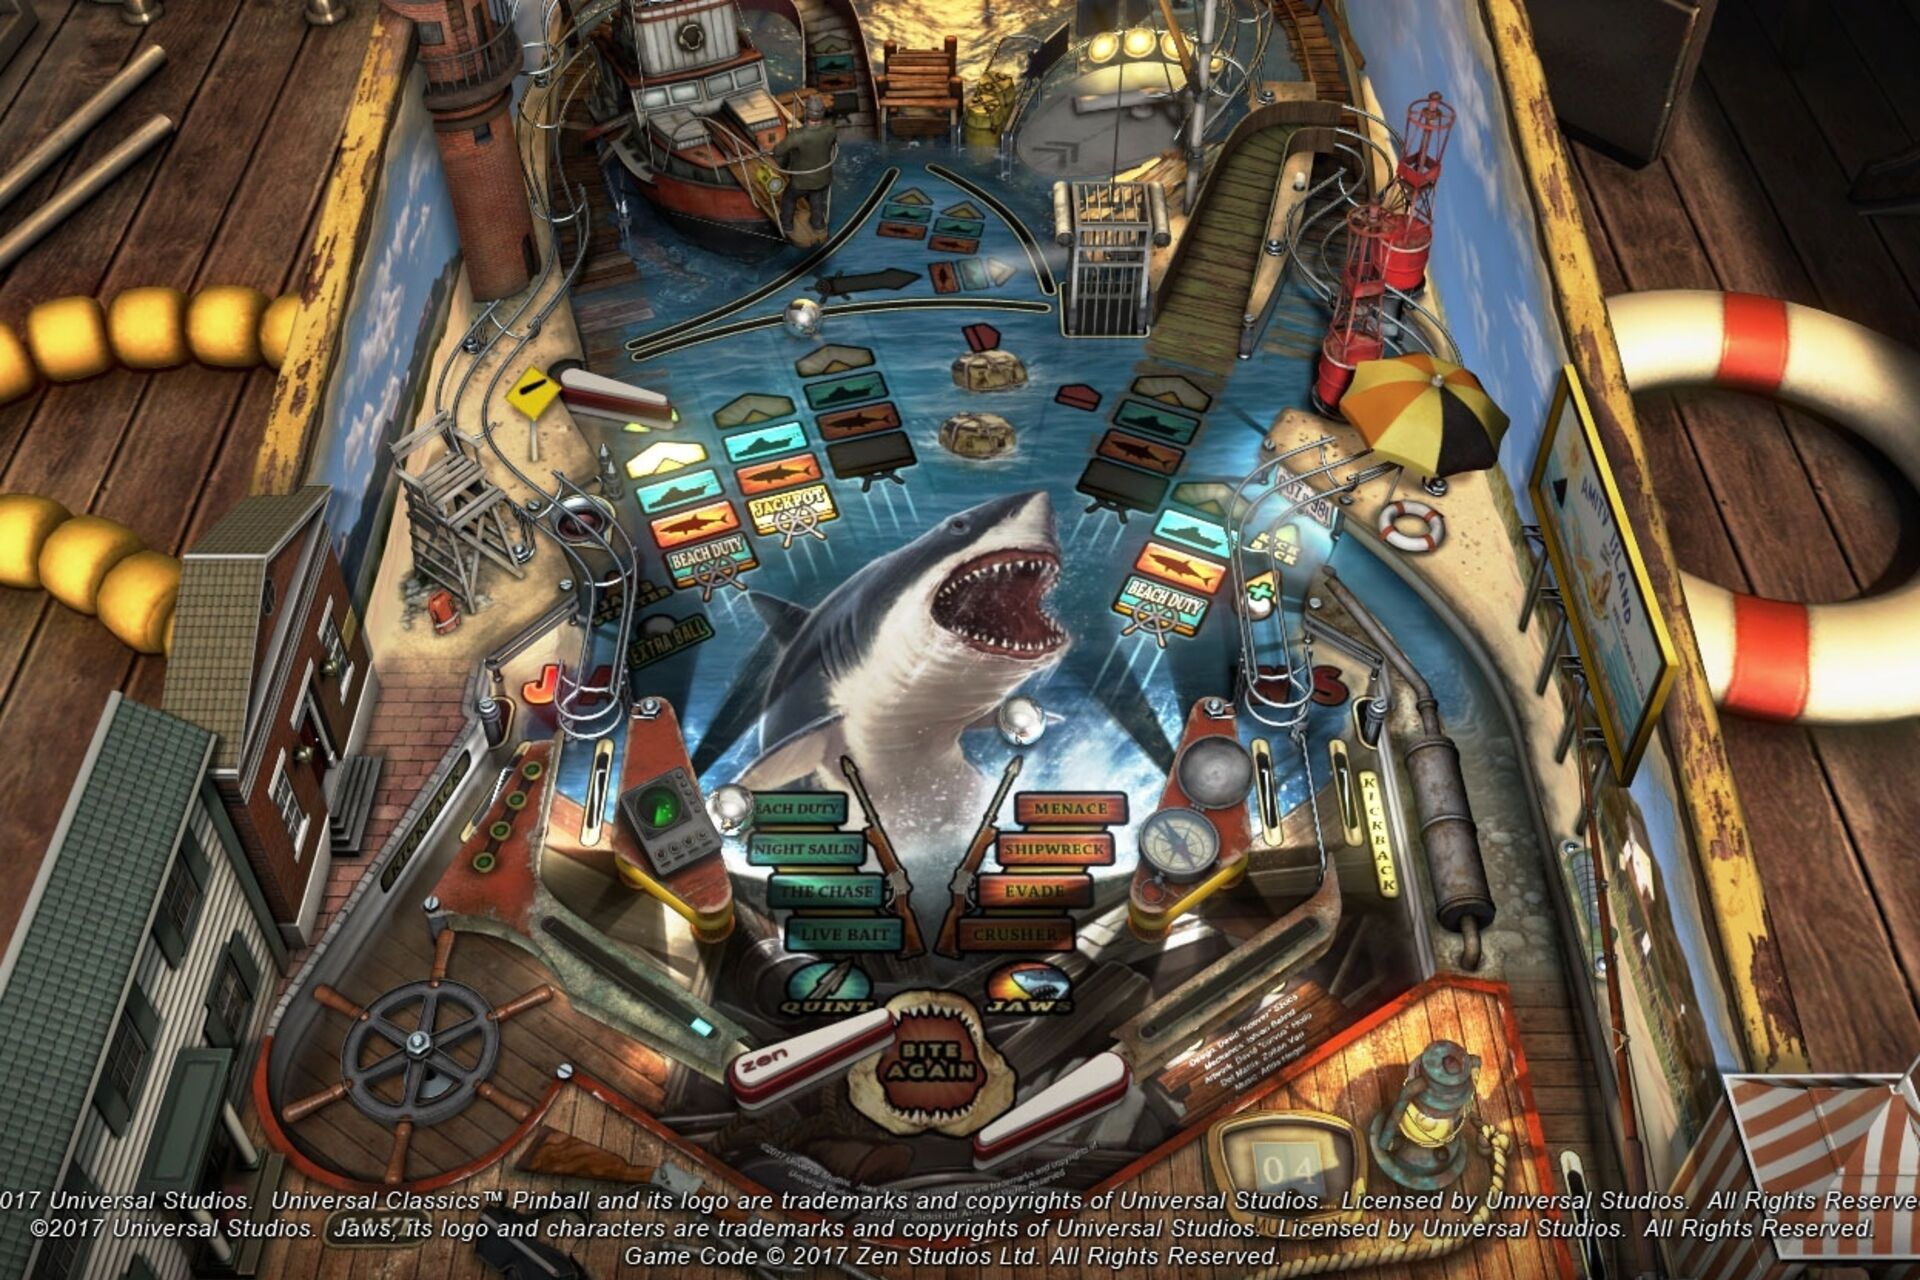 Zen Studios ditches plans to patch Pinball FX3 Nintendo